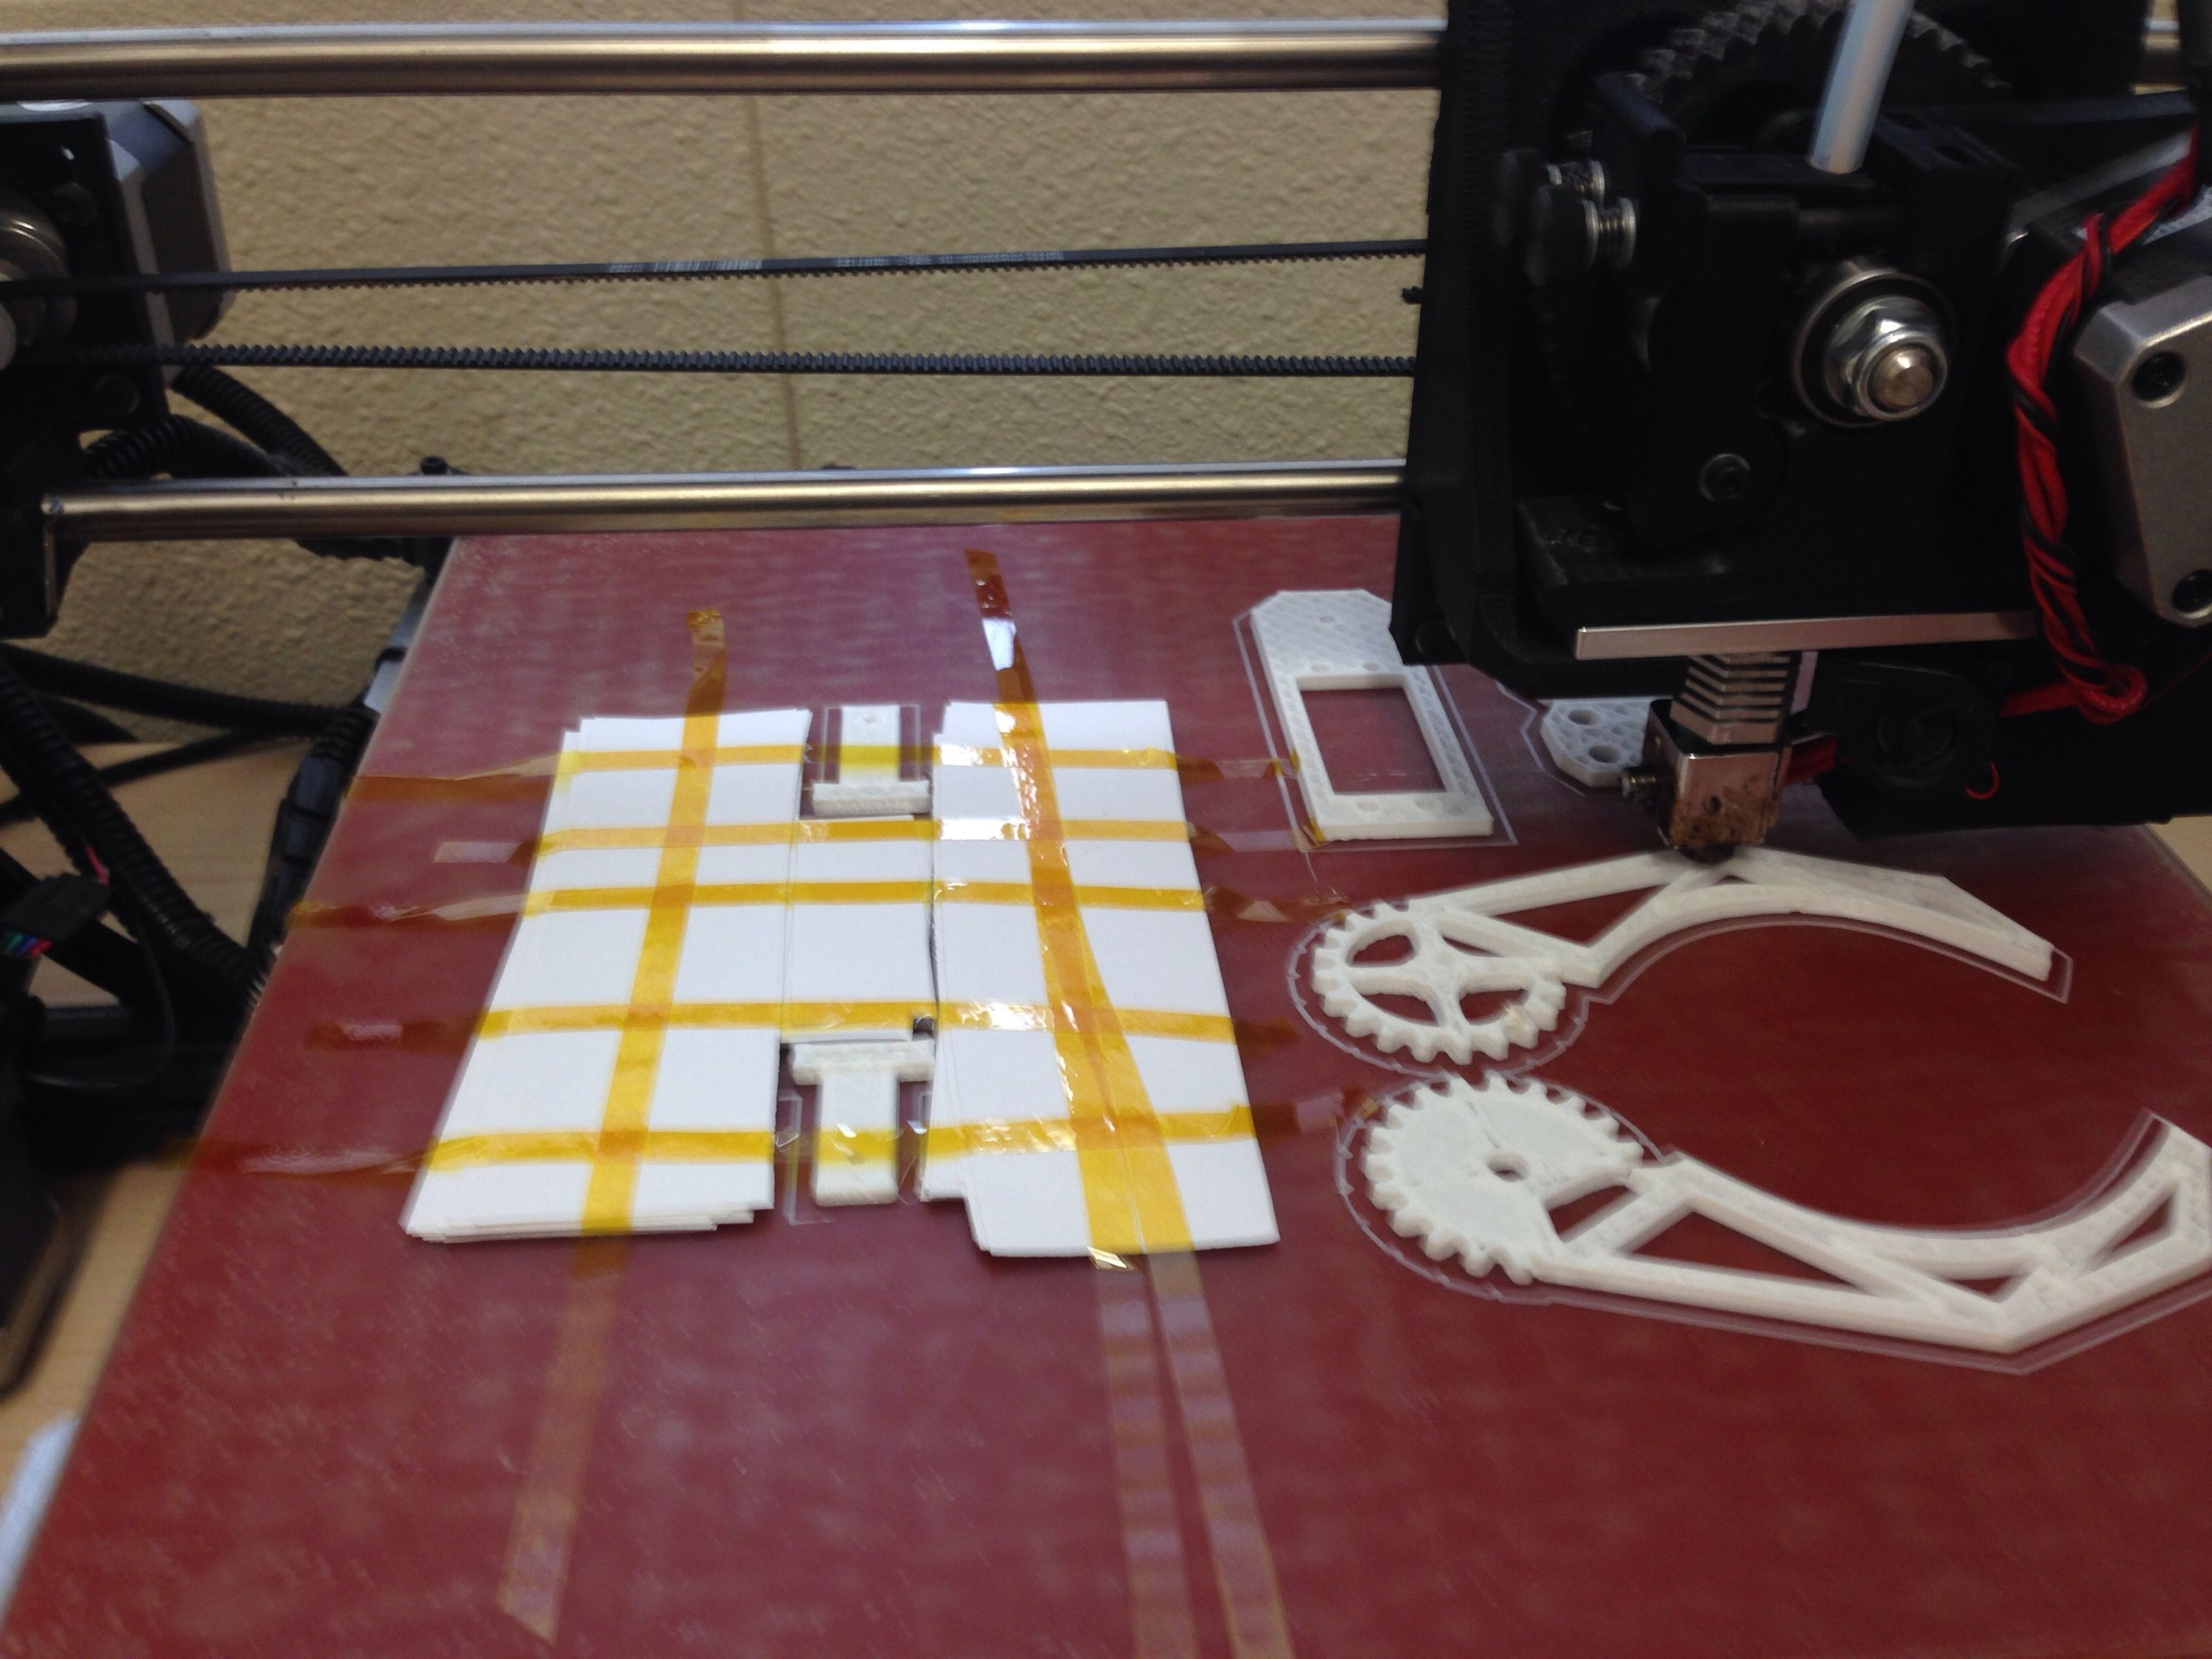 3D Printing On Shims? | 3D Printing and 3d